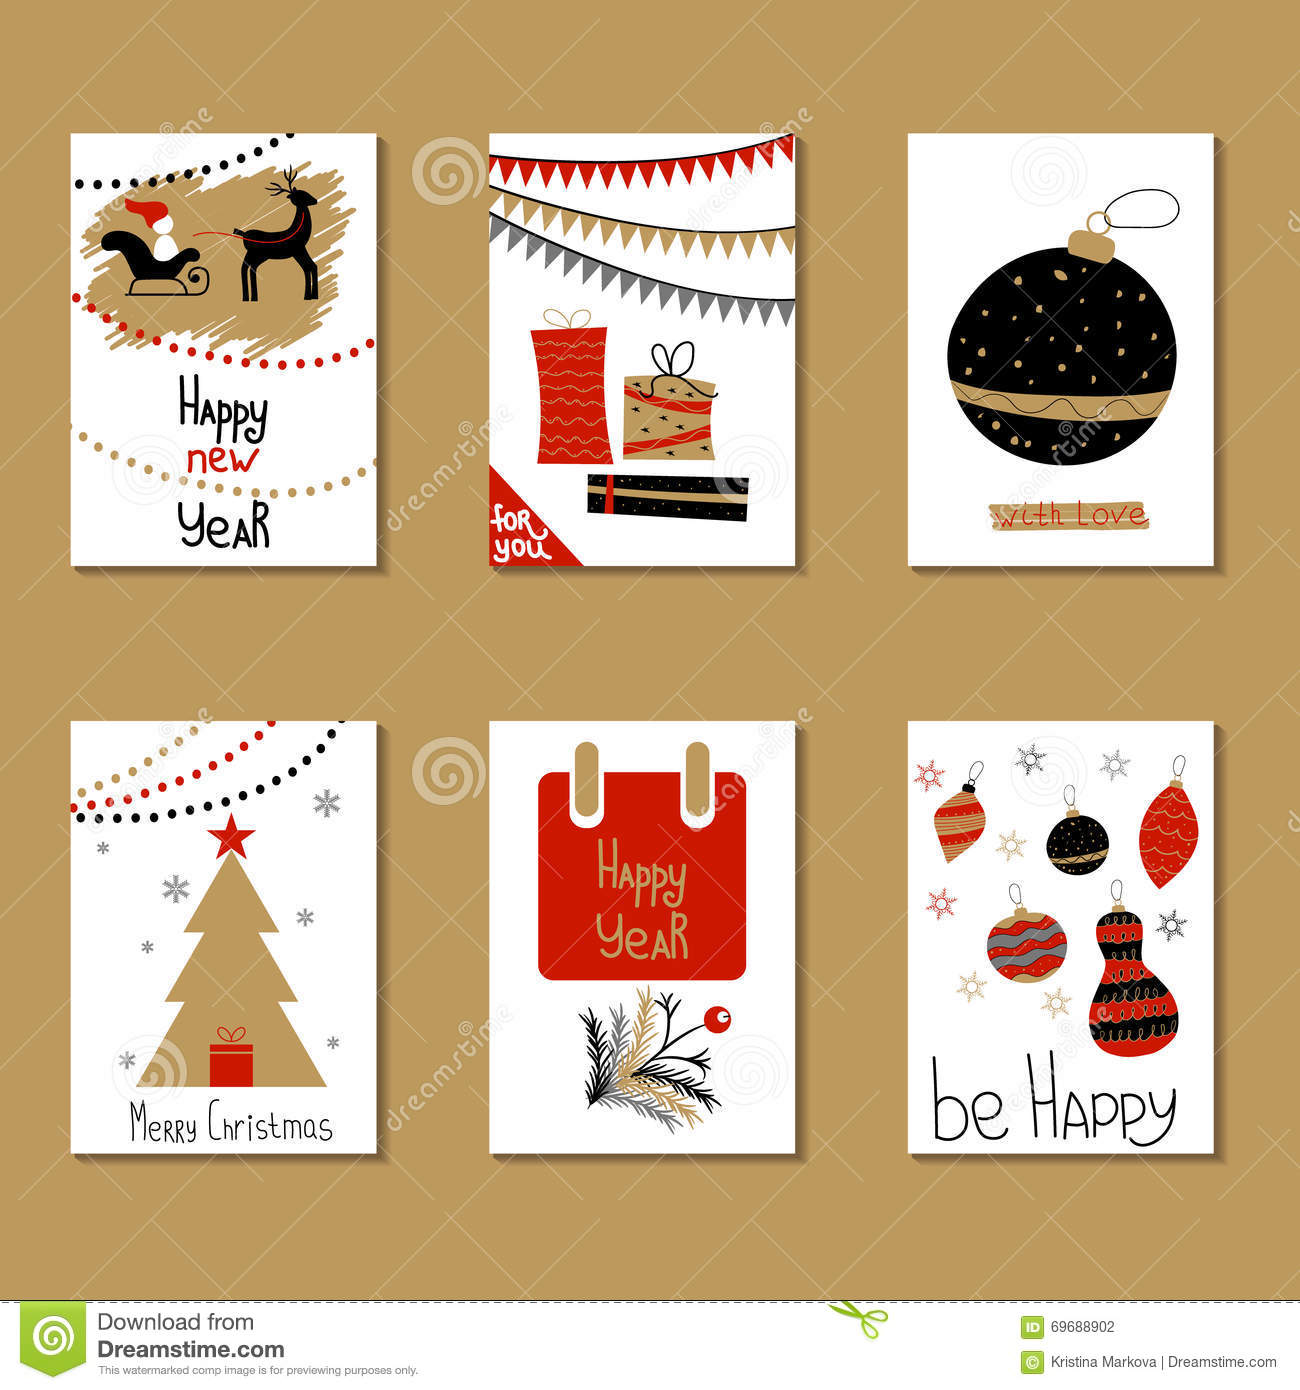 Set of greeting cards congratulations on christmas and new year download set of greeting cards congratulations on christmas and new year stock vector illustration m4hsunfo